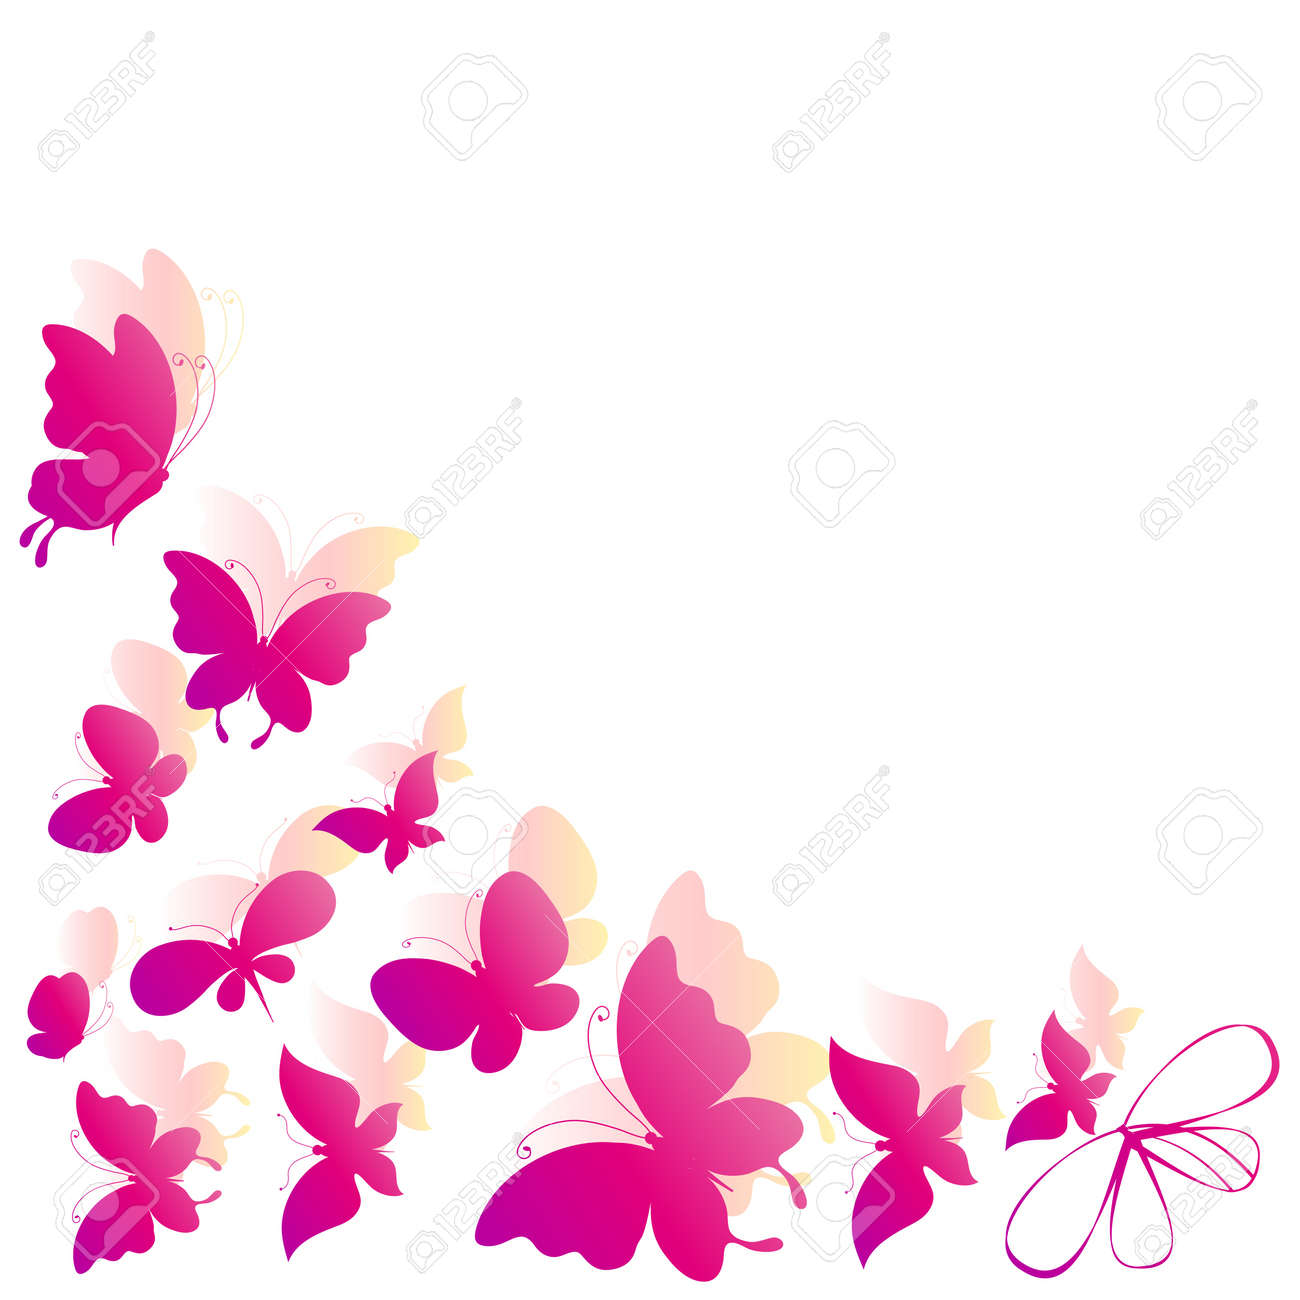 Pink butterfly vector background hd wallpapers pink butterfly vector - Butterfly Butterfly Butterflies Vector